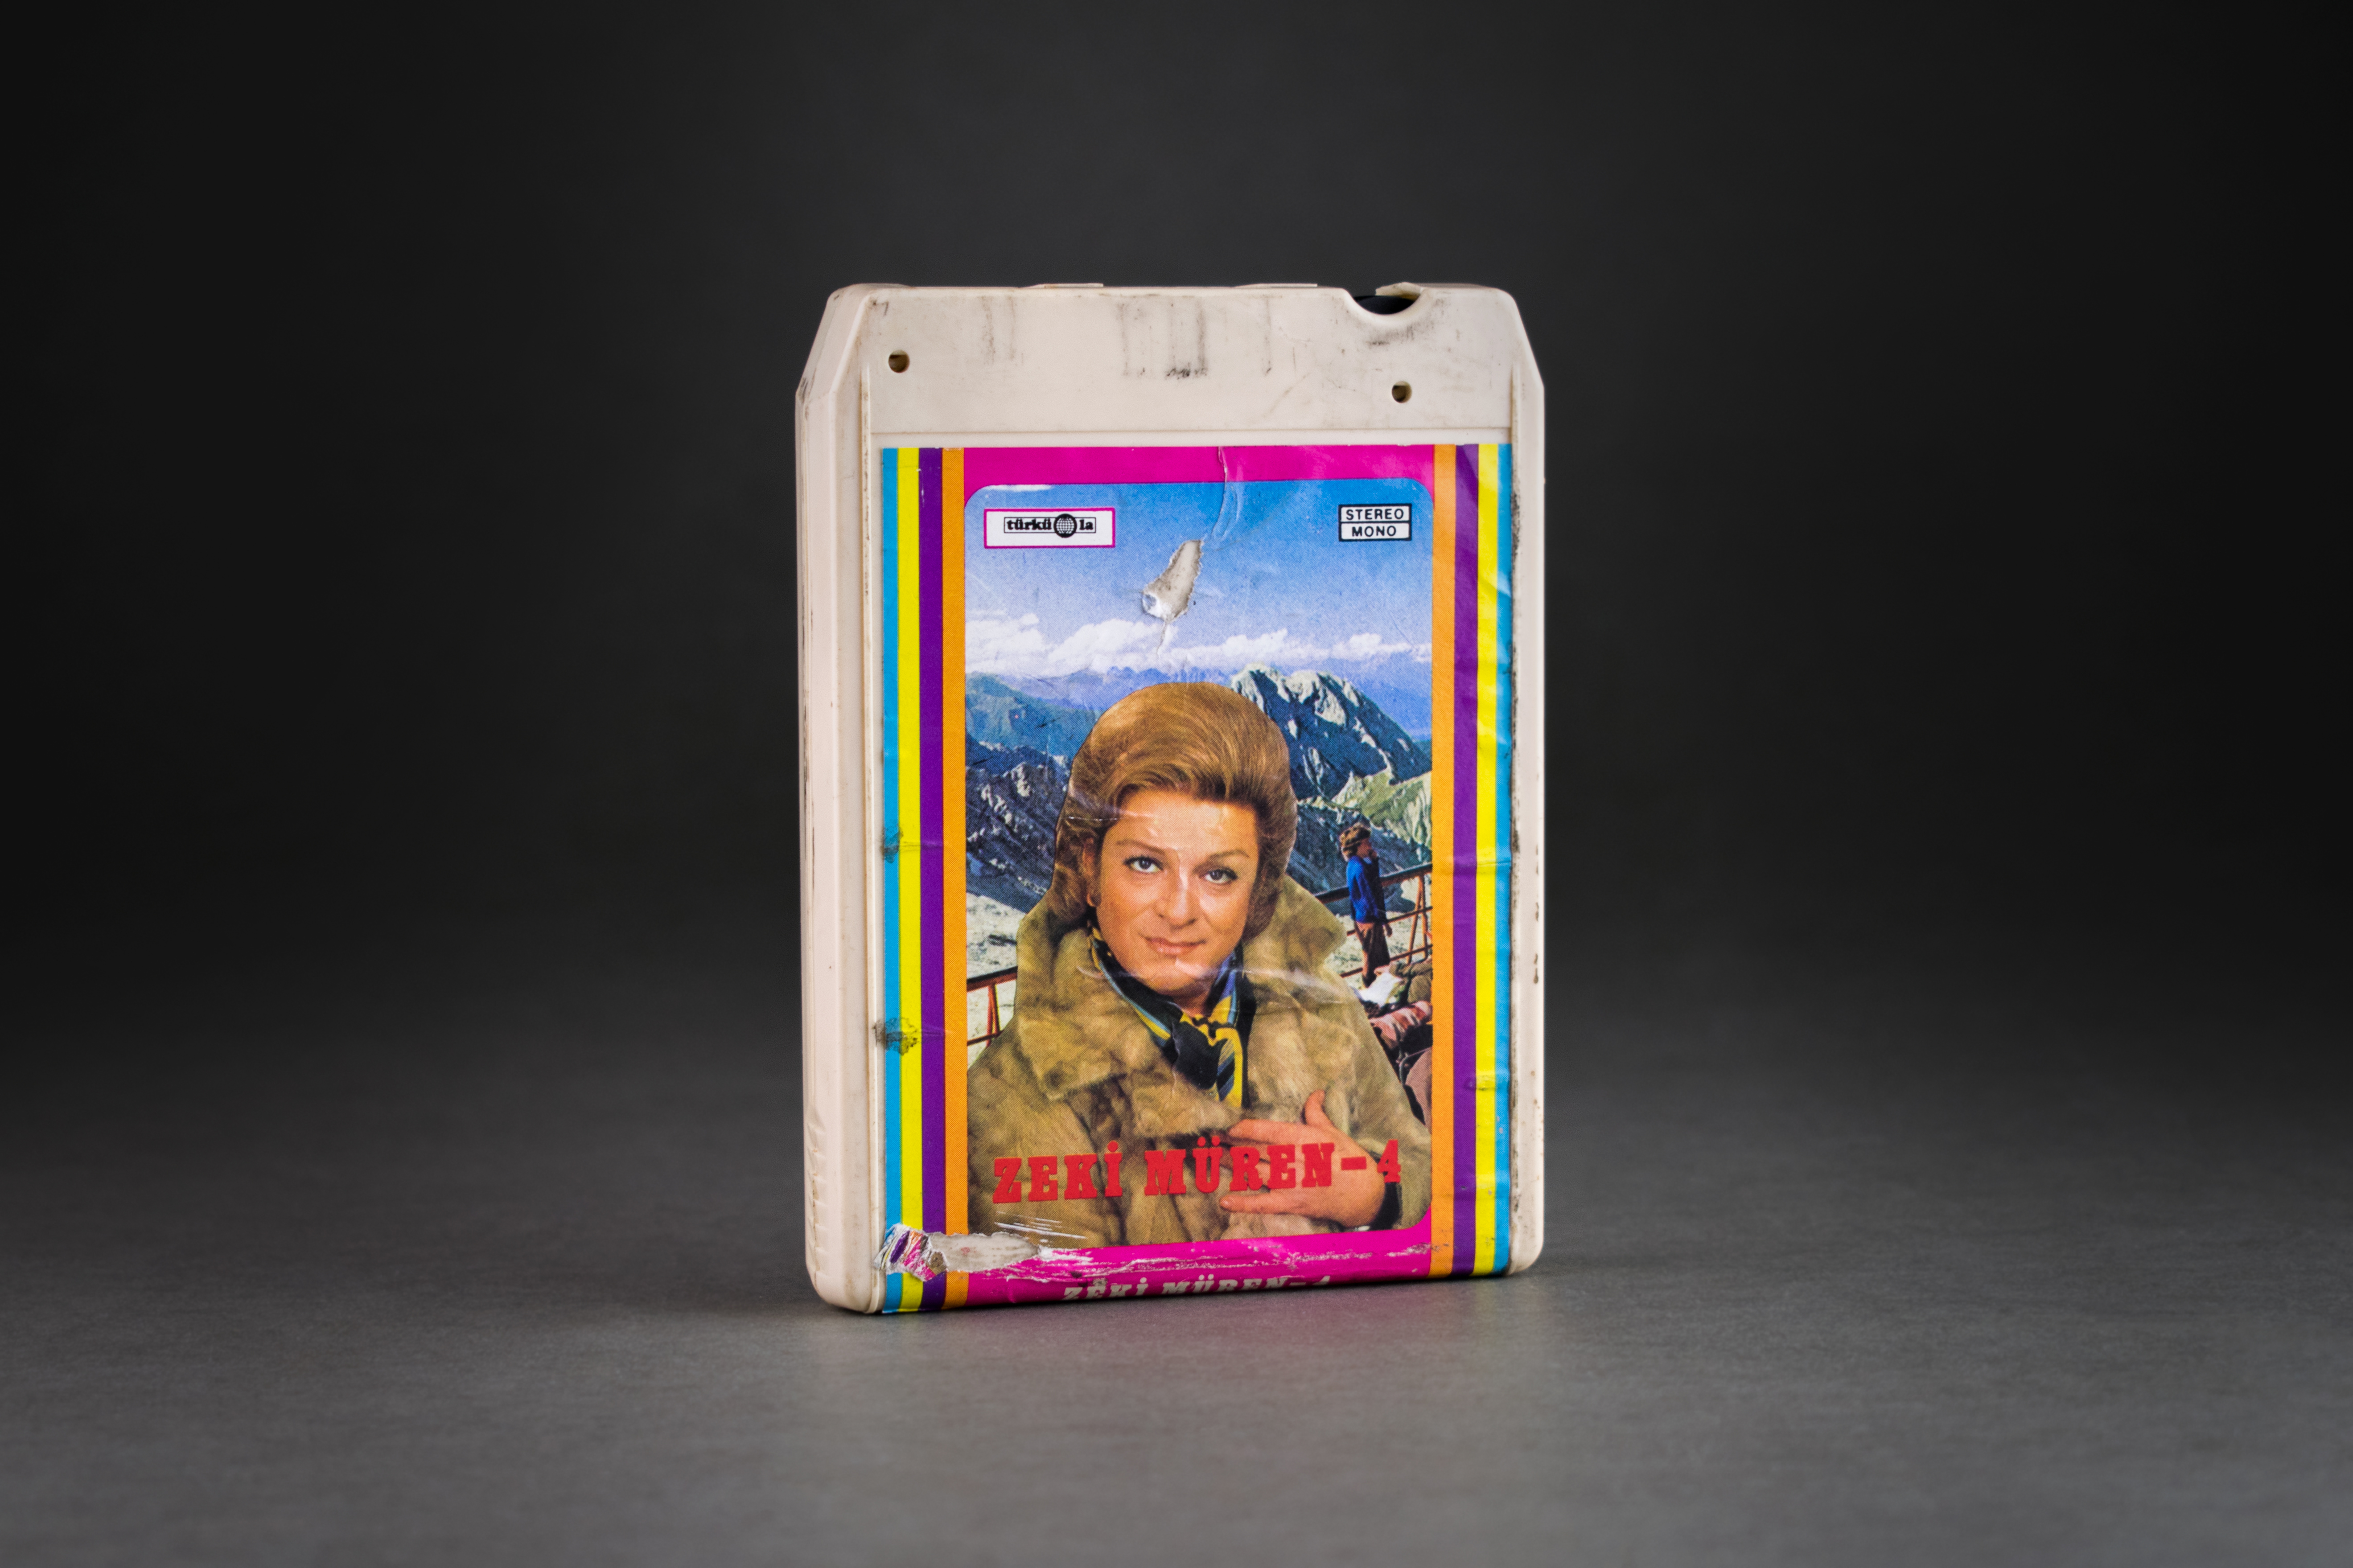 8-track cassette by Zeki Müren, Türküola, 1970. Türküola was the first record company to produce Turkish-language music in Germany. It was founded by Yılmaz Asöcal in Cologne in the 1960s. In addition to LPs, cassettes and later also CDs from well-known Turkish-speaking artists such as Barış Manço, İbrahim Tatlıses or Zeki Müren, from the 1960s, Türküola also contracted numerous migrant workers who had only started a musical career in Germany. This group also included the two best-selling artists from the record label, Metin Türköz and Yüksel Özkasap, who also gained fame in Turkey. In the 1980s, Türküola produced the albums of the well-known musician Cem Karaca. DOMiD Archive, Cologne, BT 0612,0008